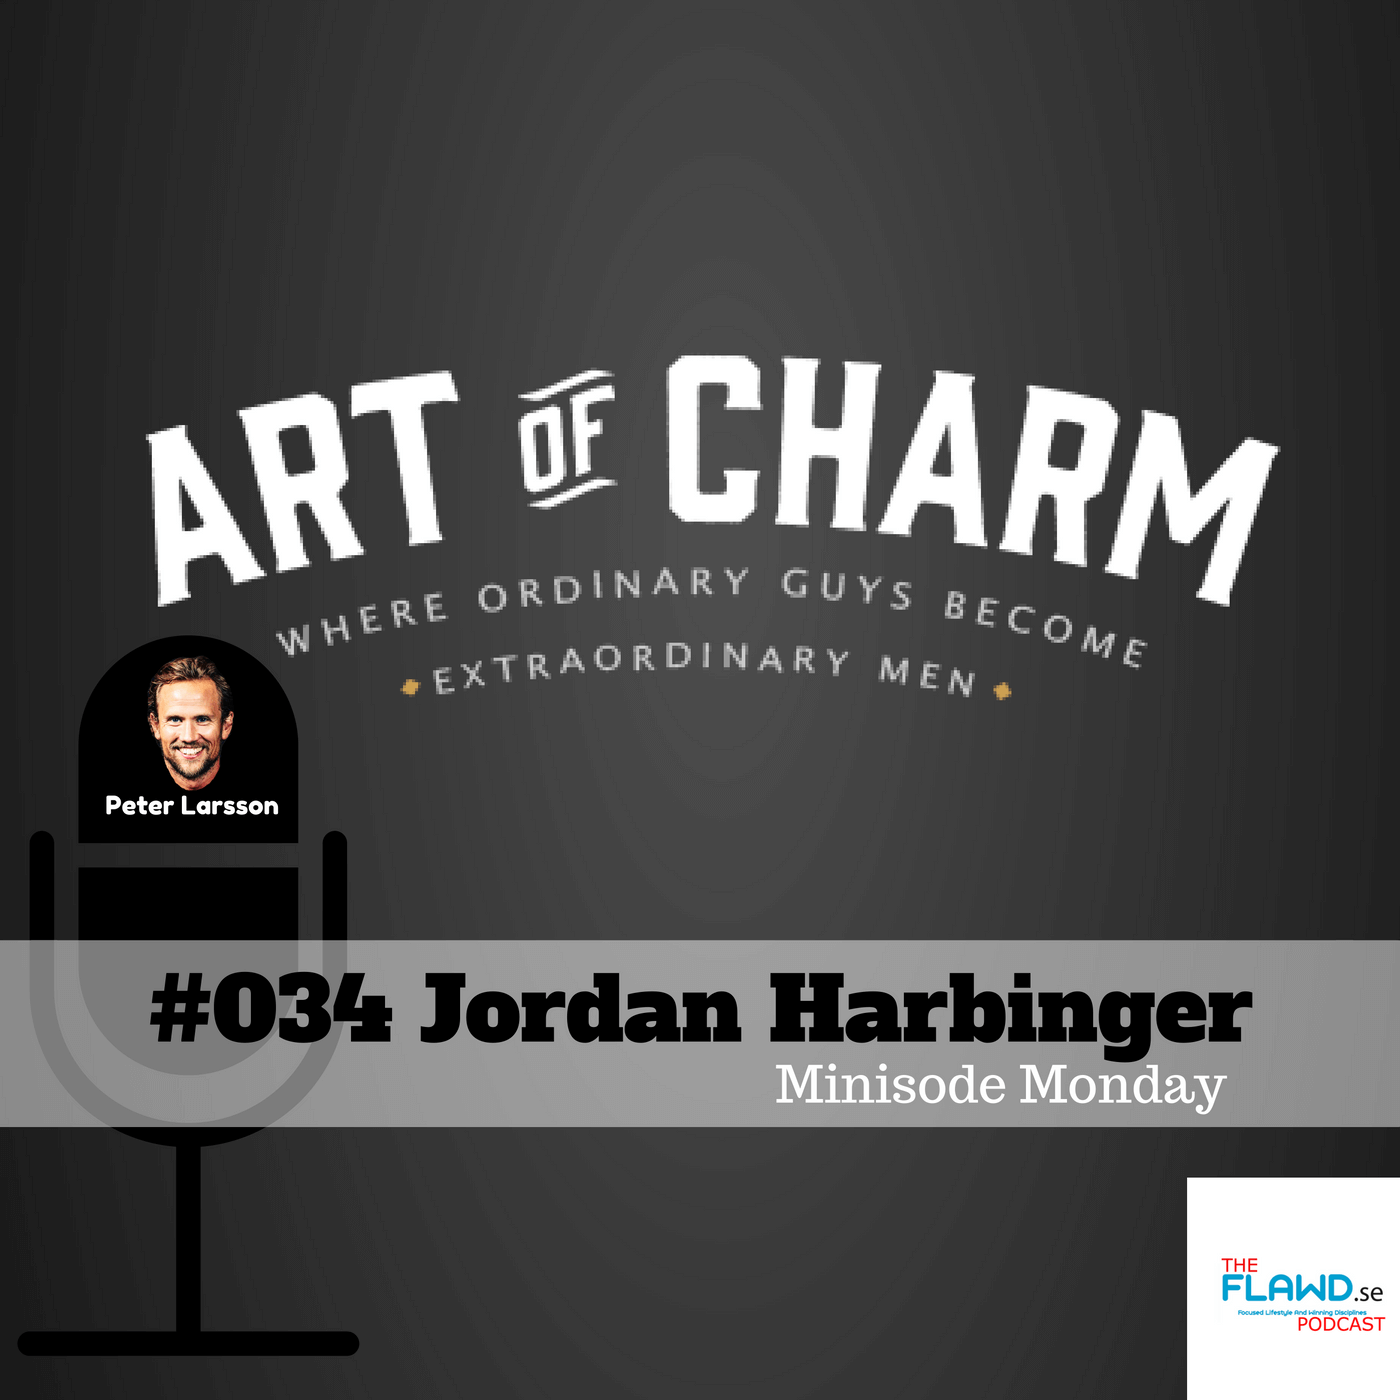 Jordan Harbinger – Minisode Monday – The FLAWD podcast (#034)